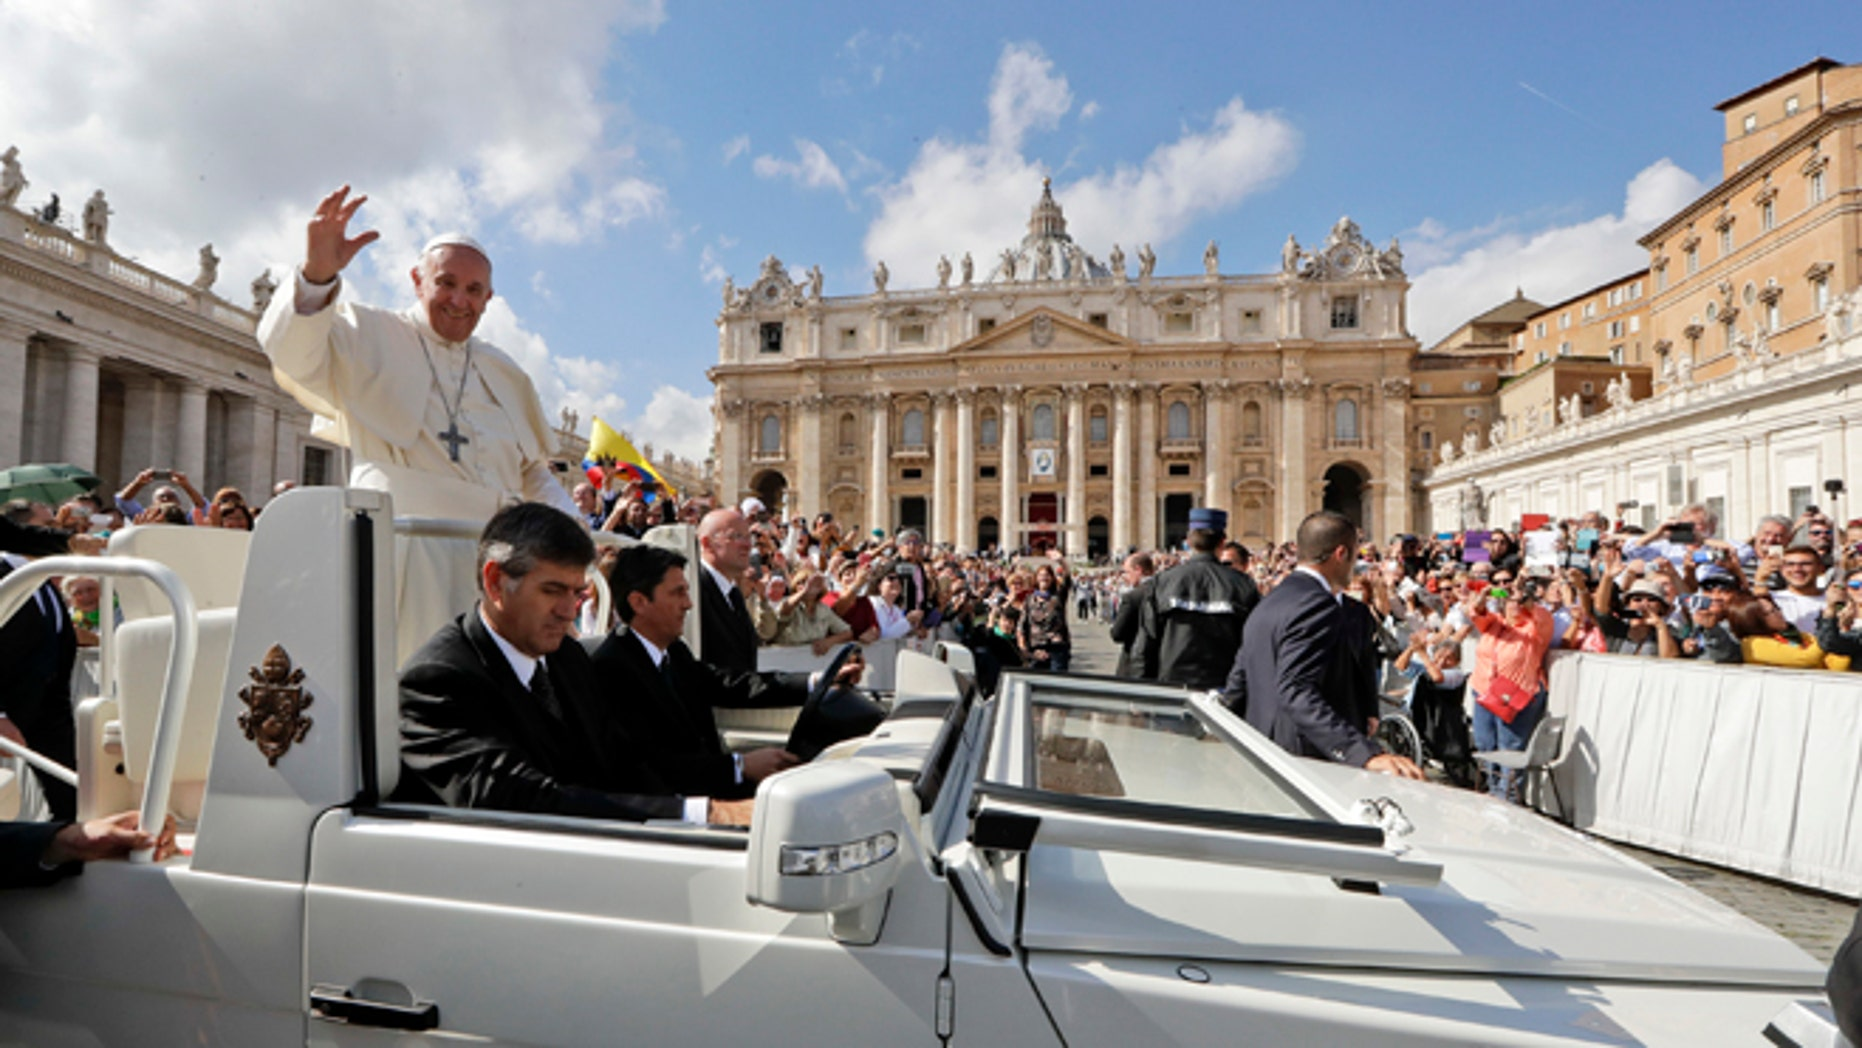 Pope Francis waves to faithful as leaves at the end of a jubilee mass he celebrated in St. Peter's Square, at the Vatican,  Sunday, Oct. 9, 2016. Pope Francis has named 17 new cardinals _ 13 of them under age 80 and thus eligible to vote in a conclave to elect his successor.  (AP Photo/Andrew Medichini)